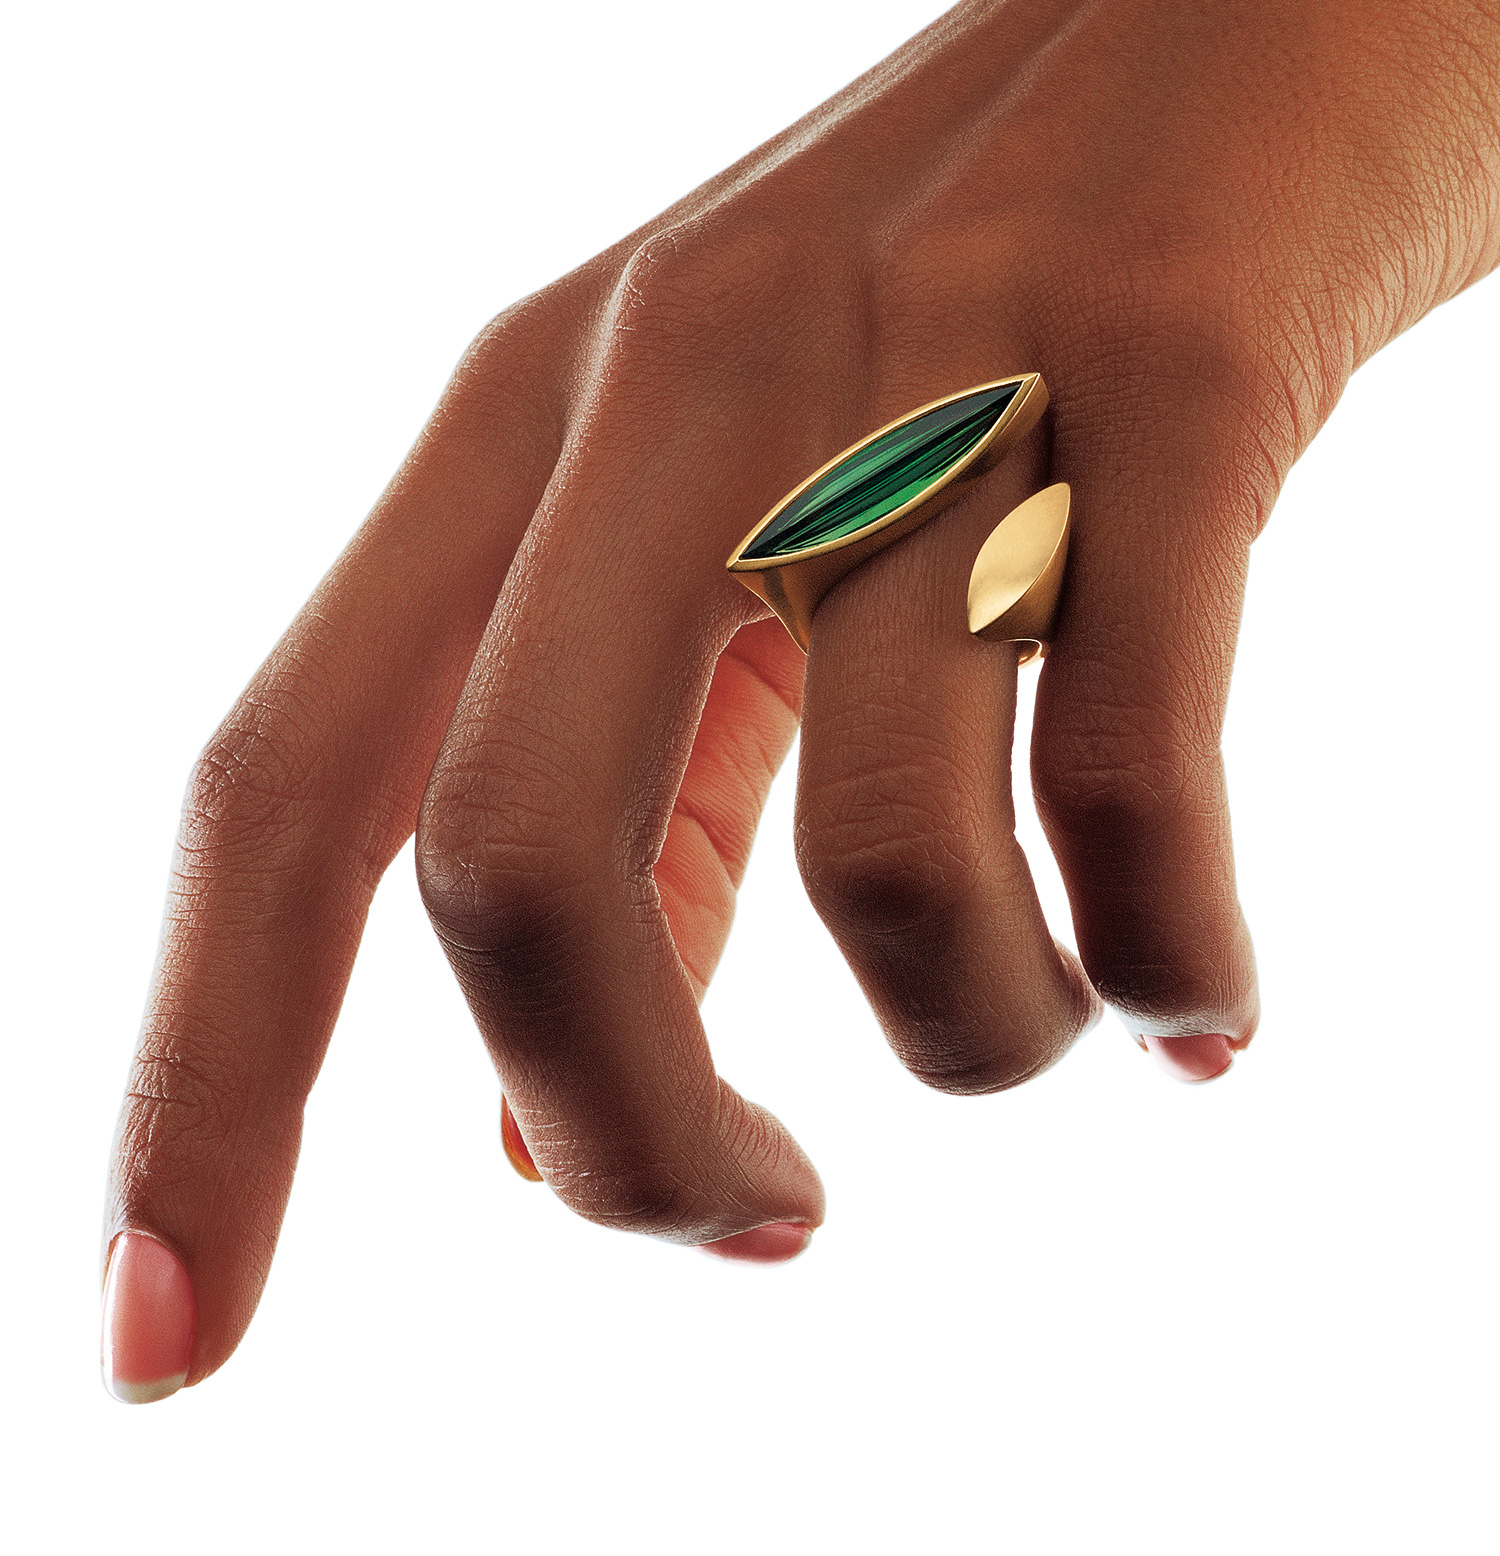 18 carat gold open ring with green tourmaline